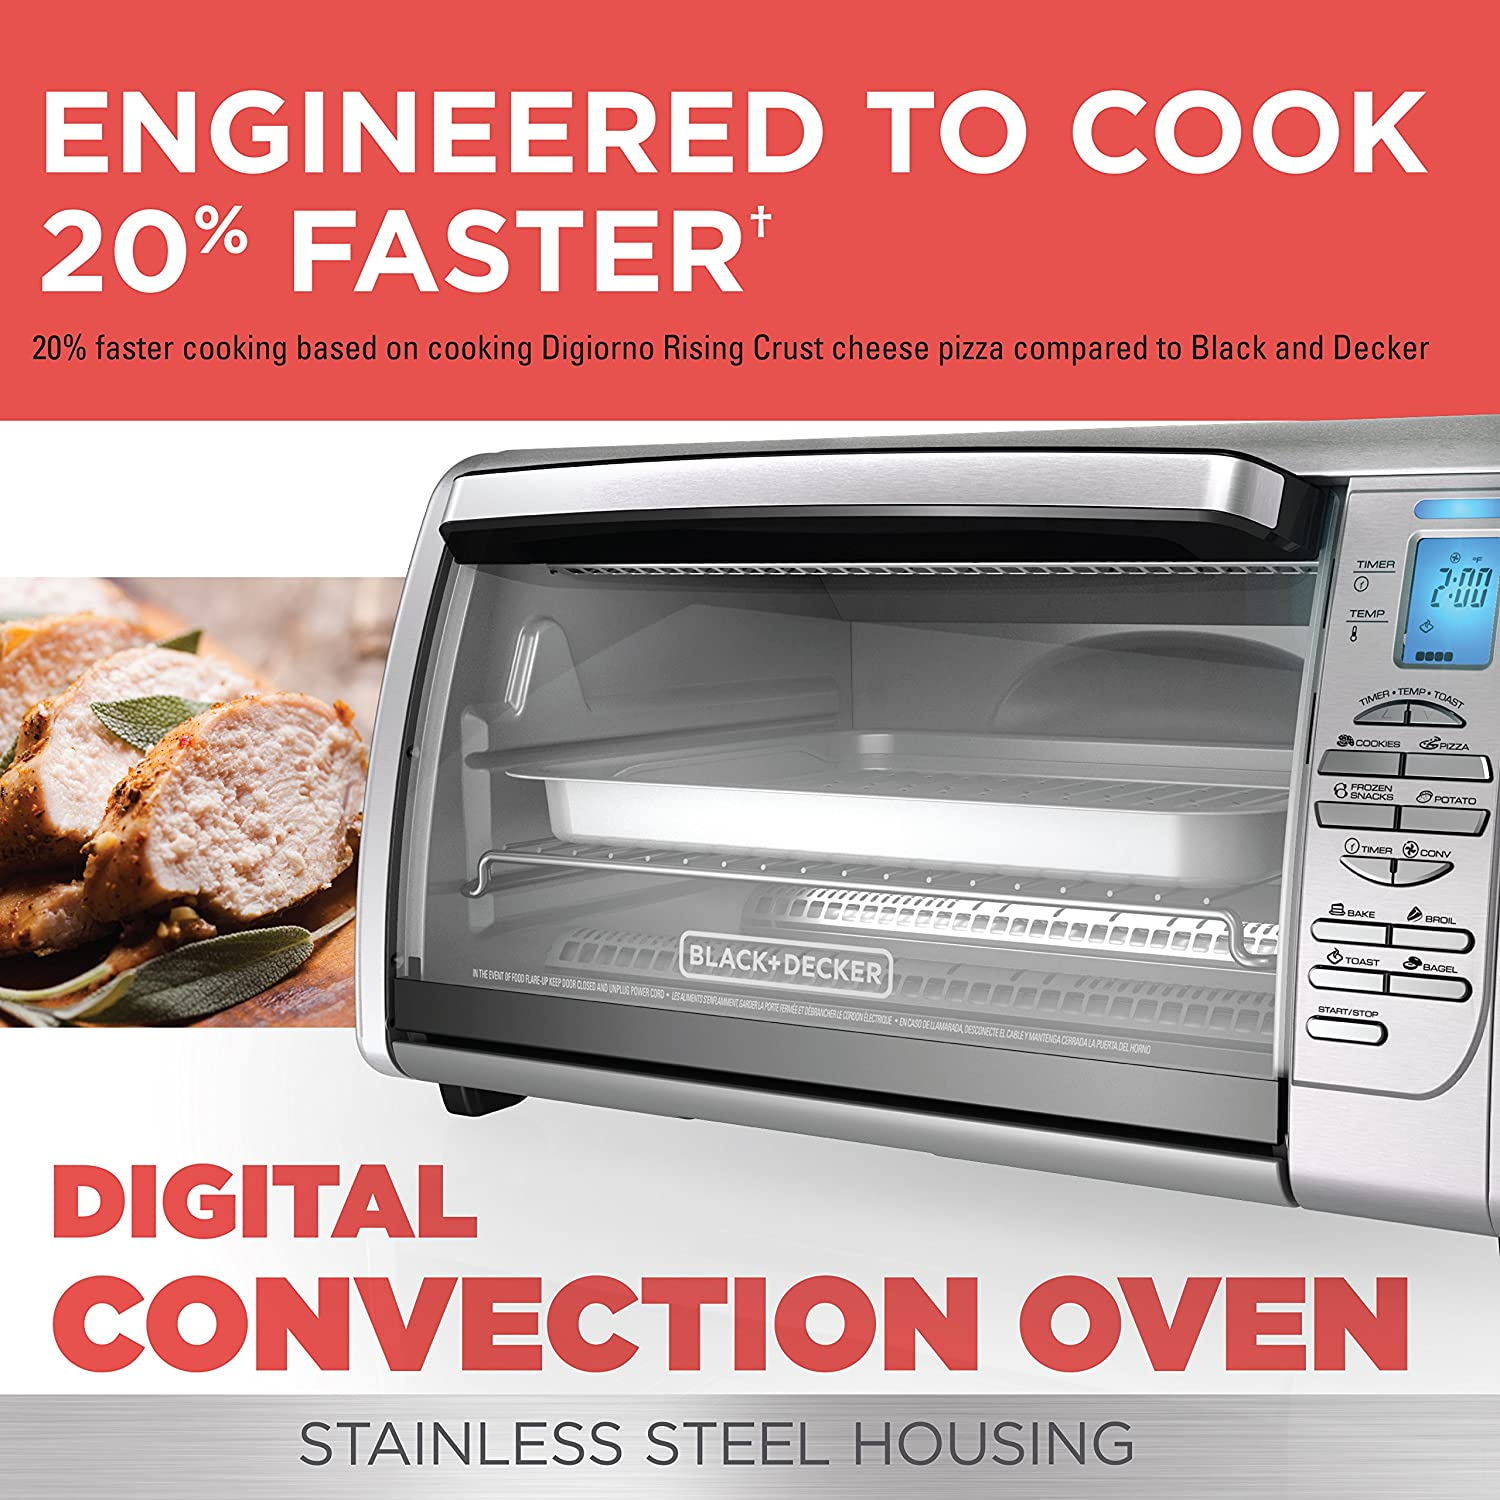 BLACK+DECKER CTO6335S Stainless Steel Countertop Convection Oven